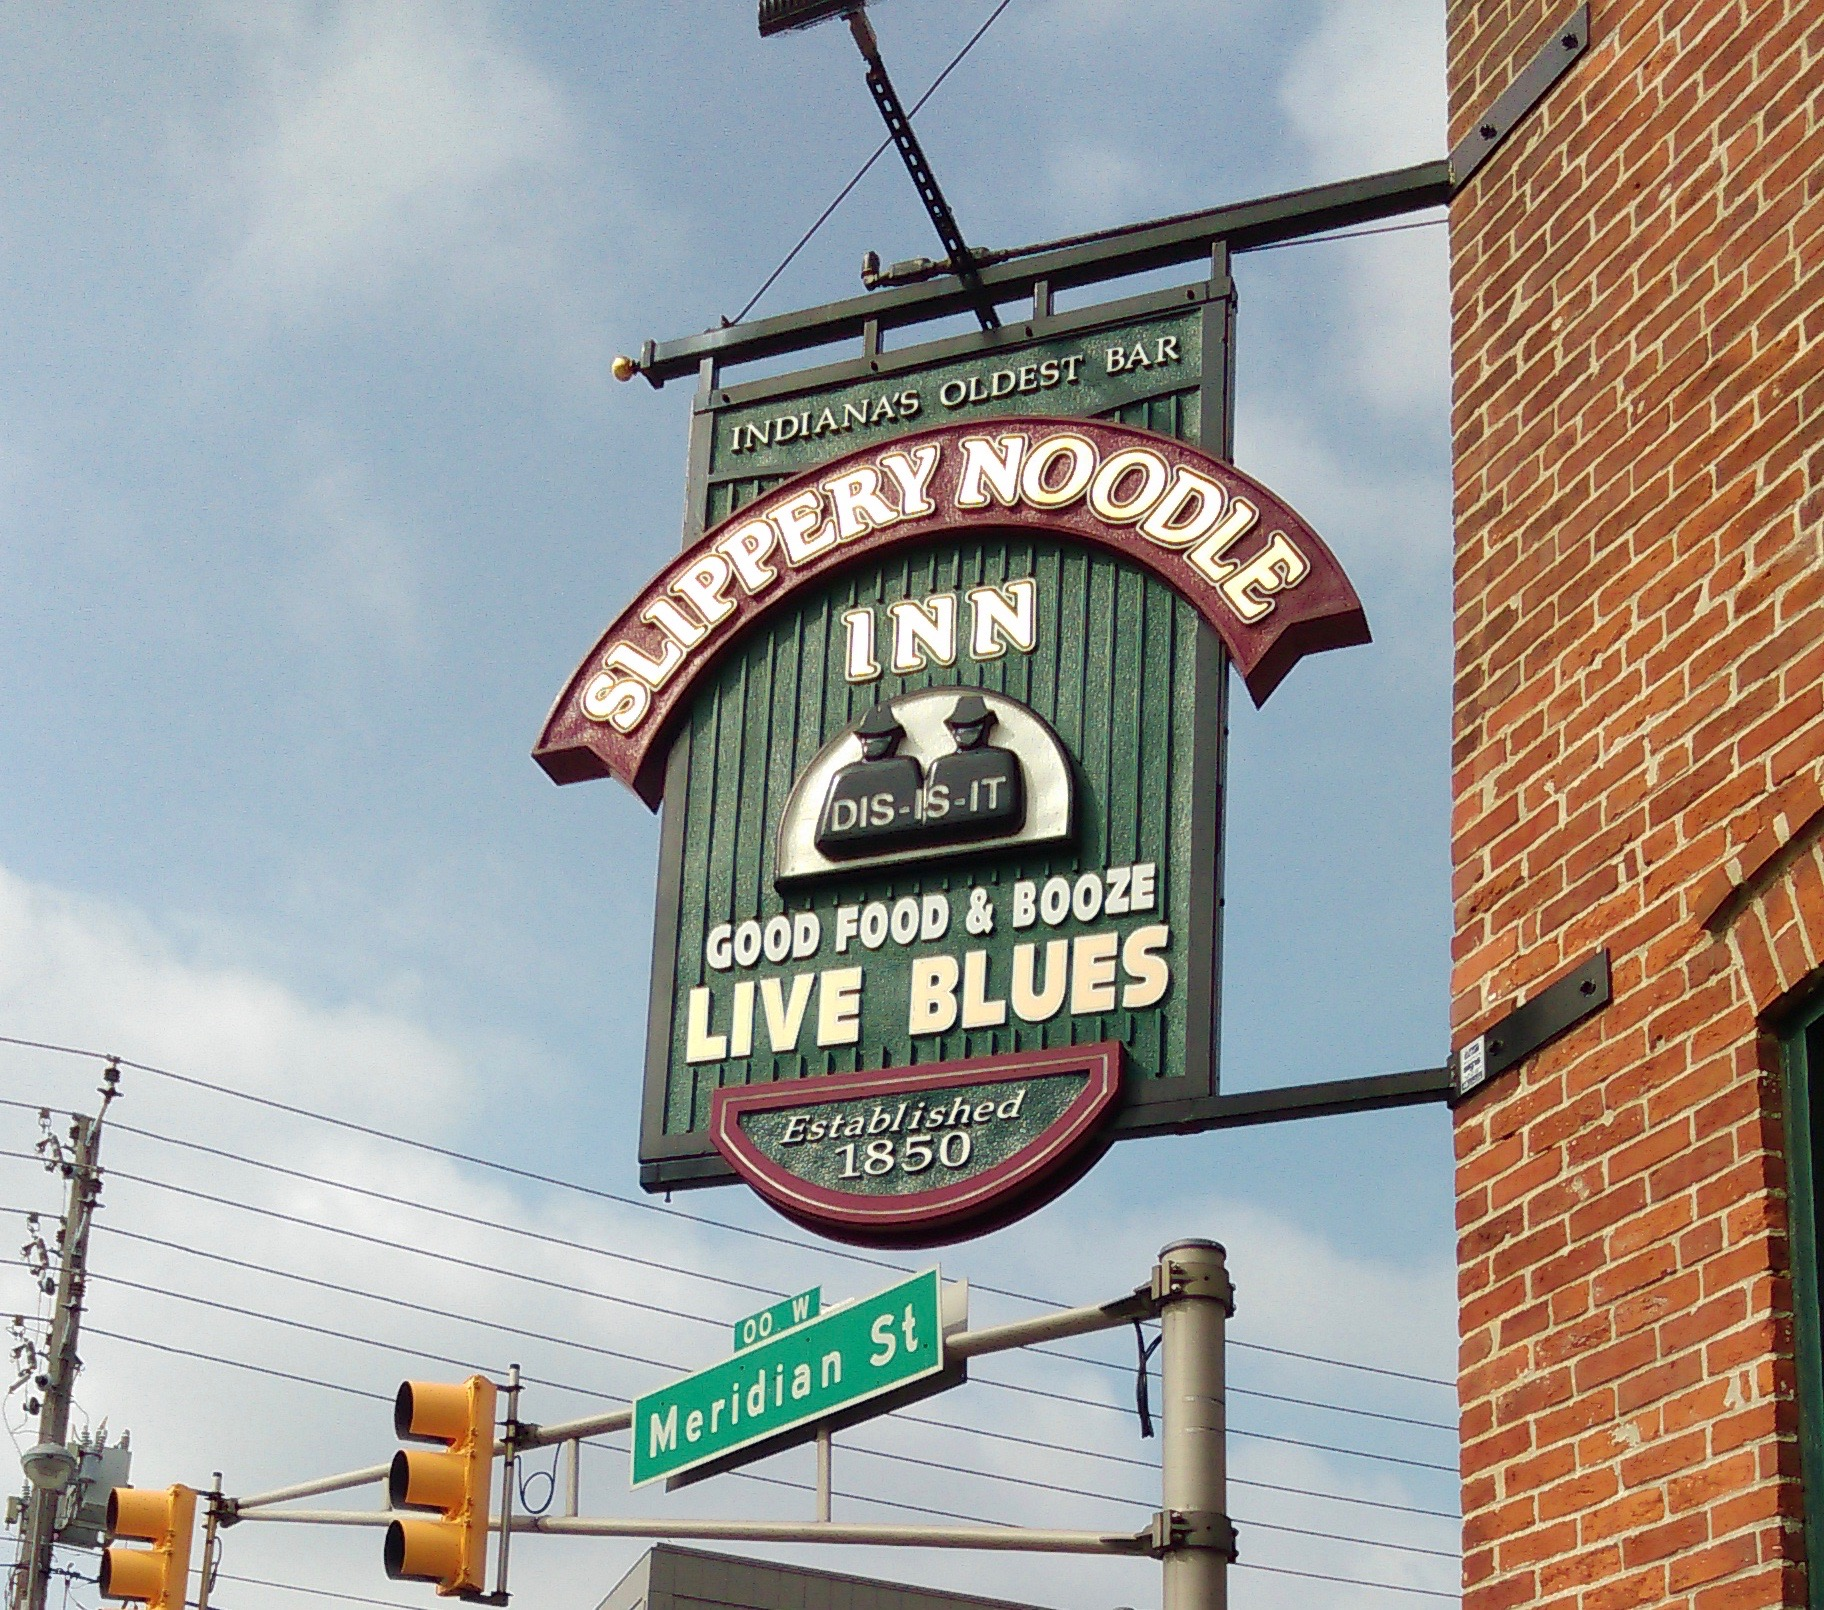 Slippery_Noodle_Inn,_Indianapolis (1).jpg